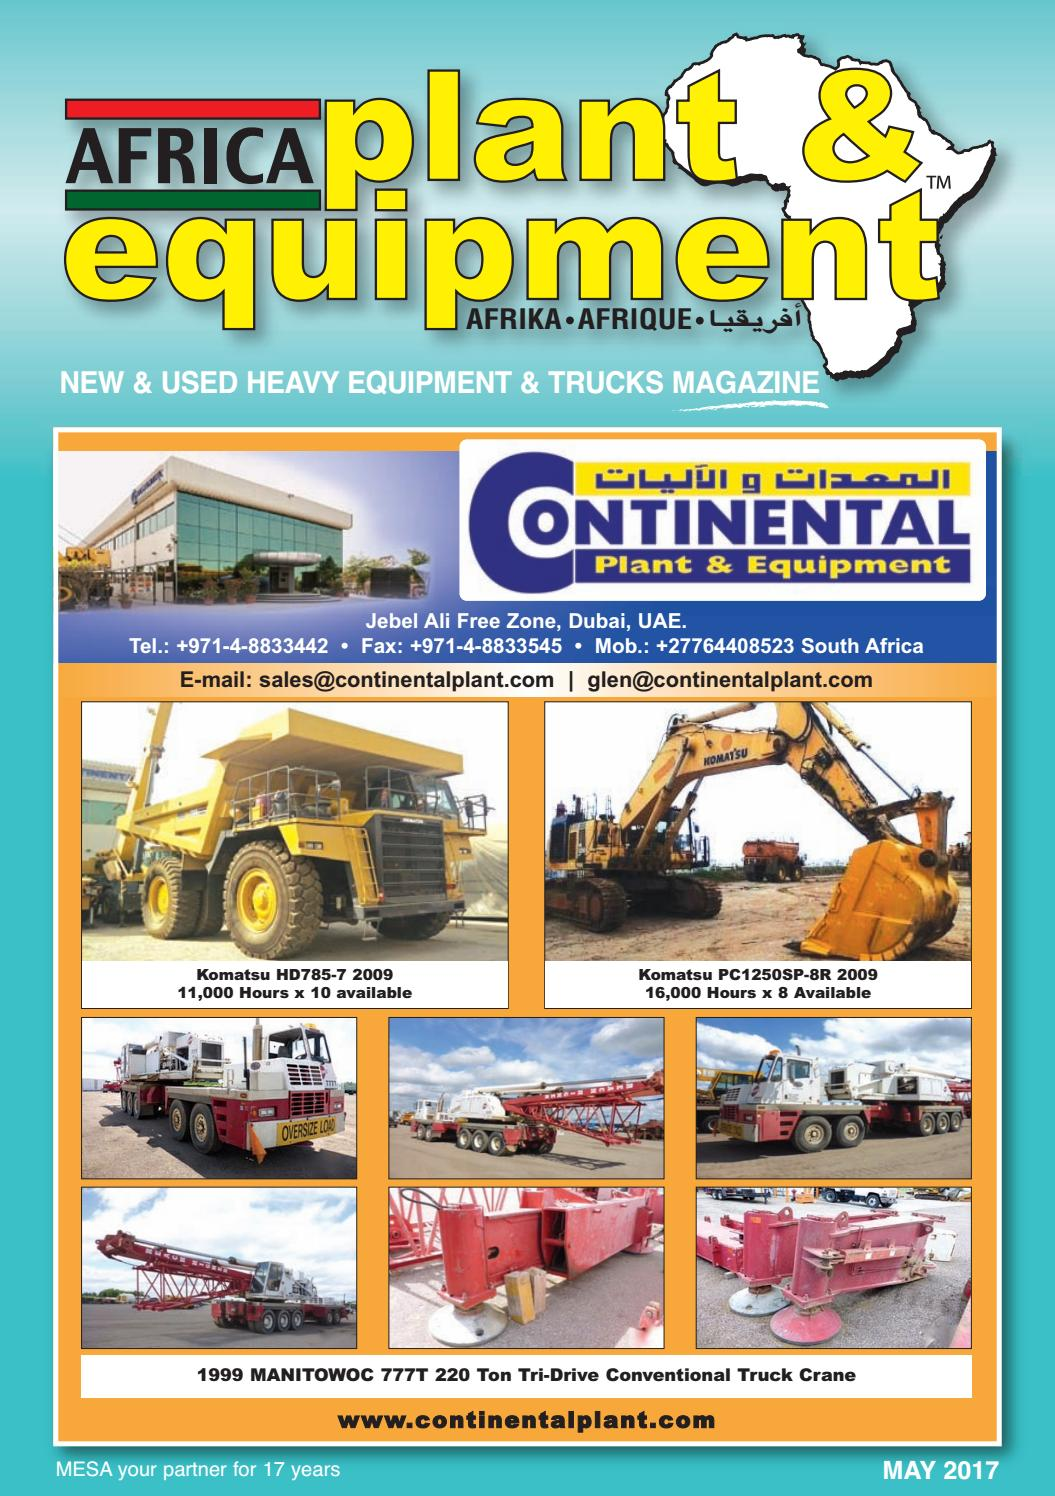 Africa Plant & Equipment - May 2017 Edition